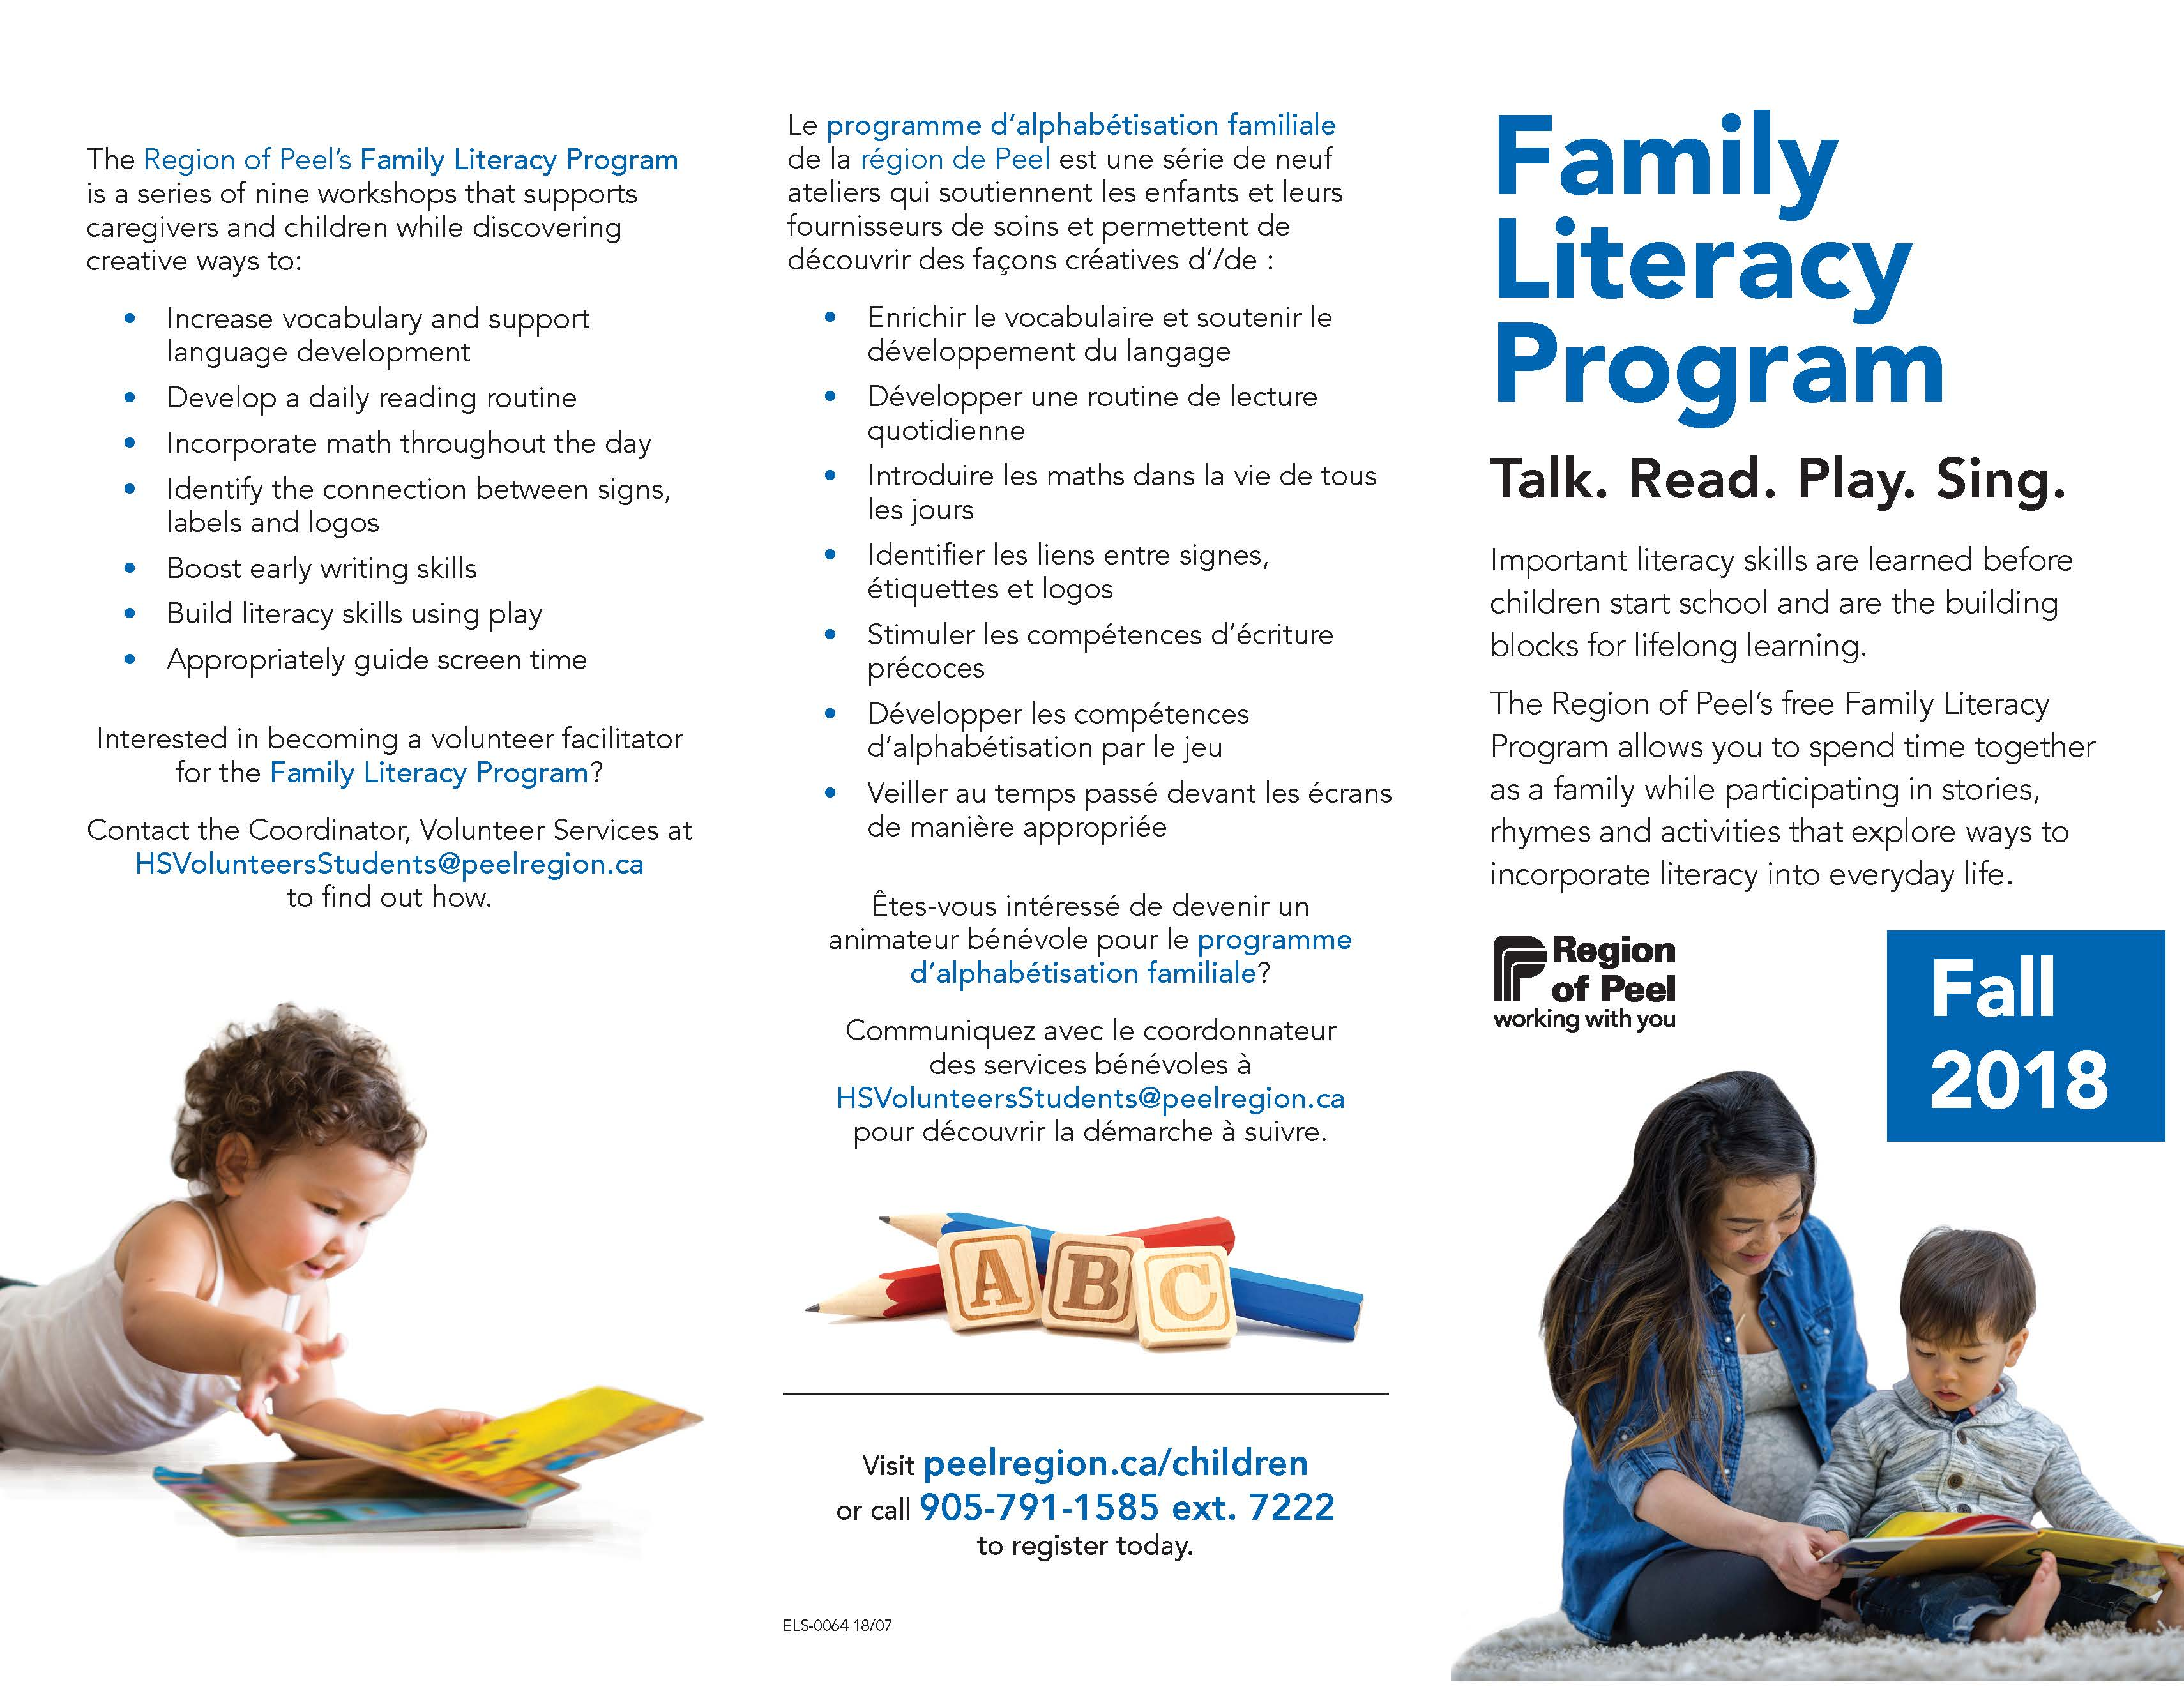 Family Litearcy_Brochure_Fall2018 2_Page_1.jpg